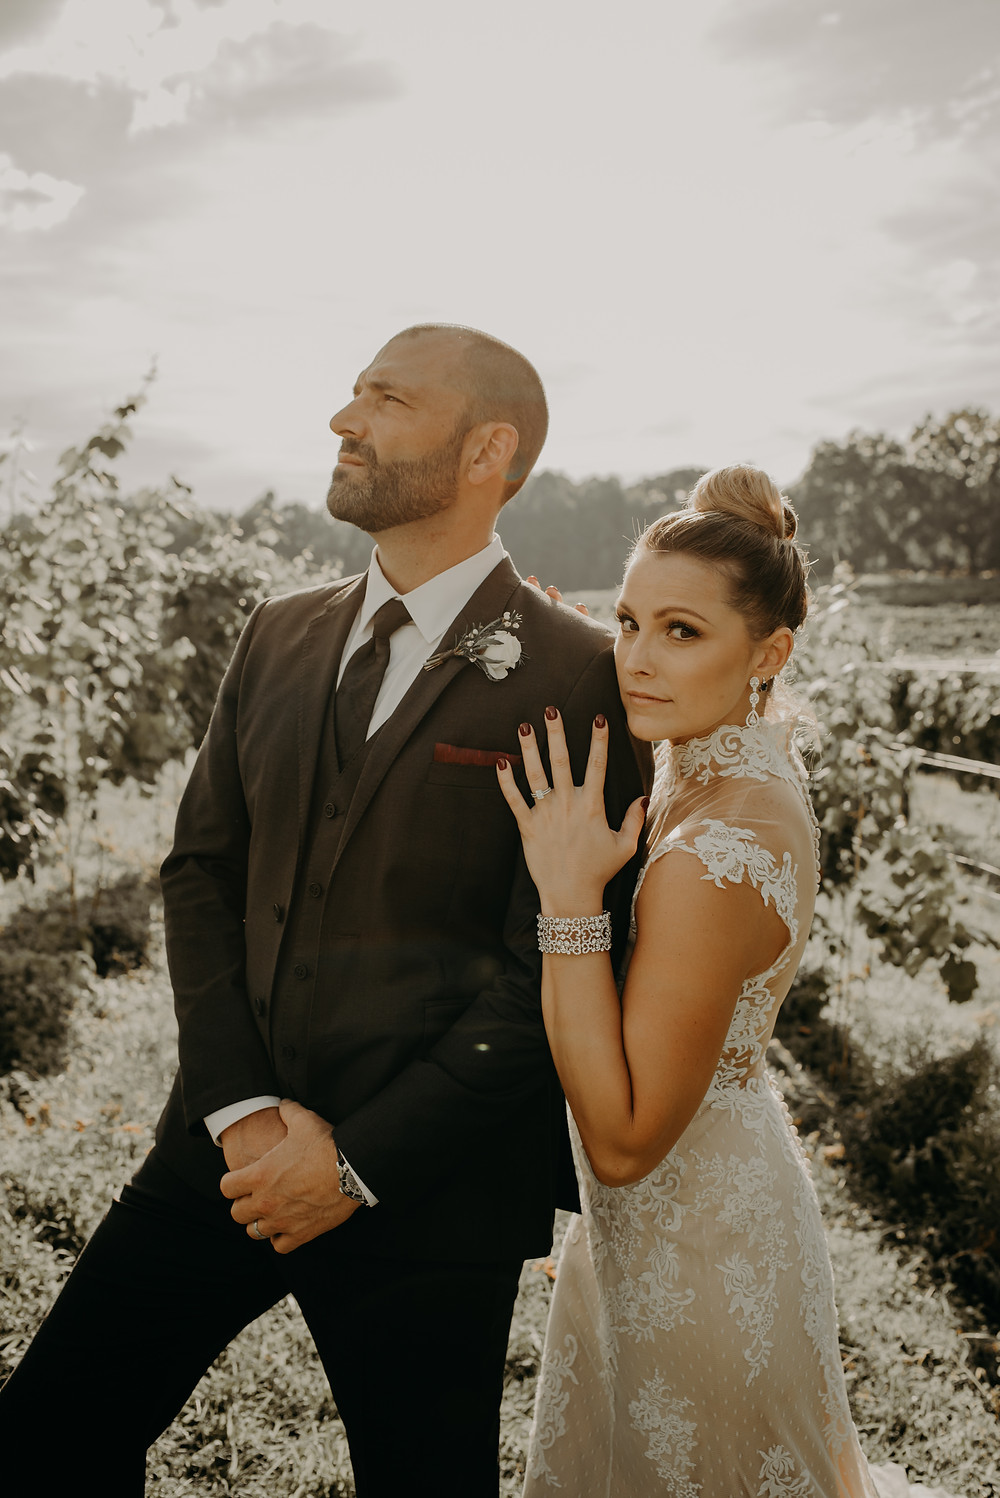 bride wearing a lace dress with her groom wearing a black suit in a vineyard